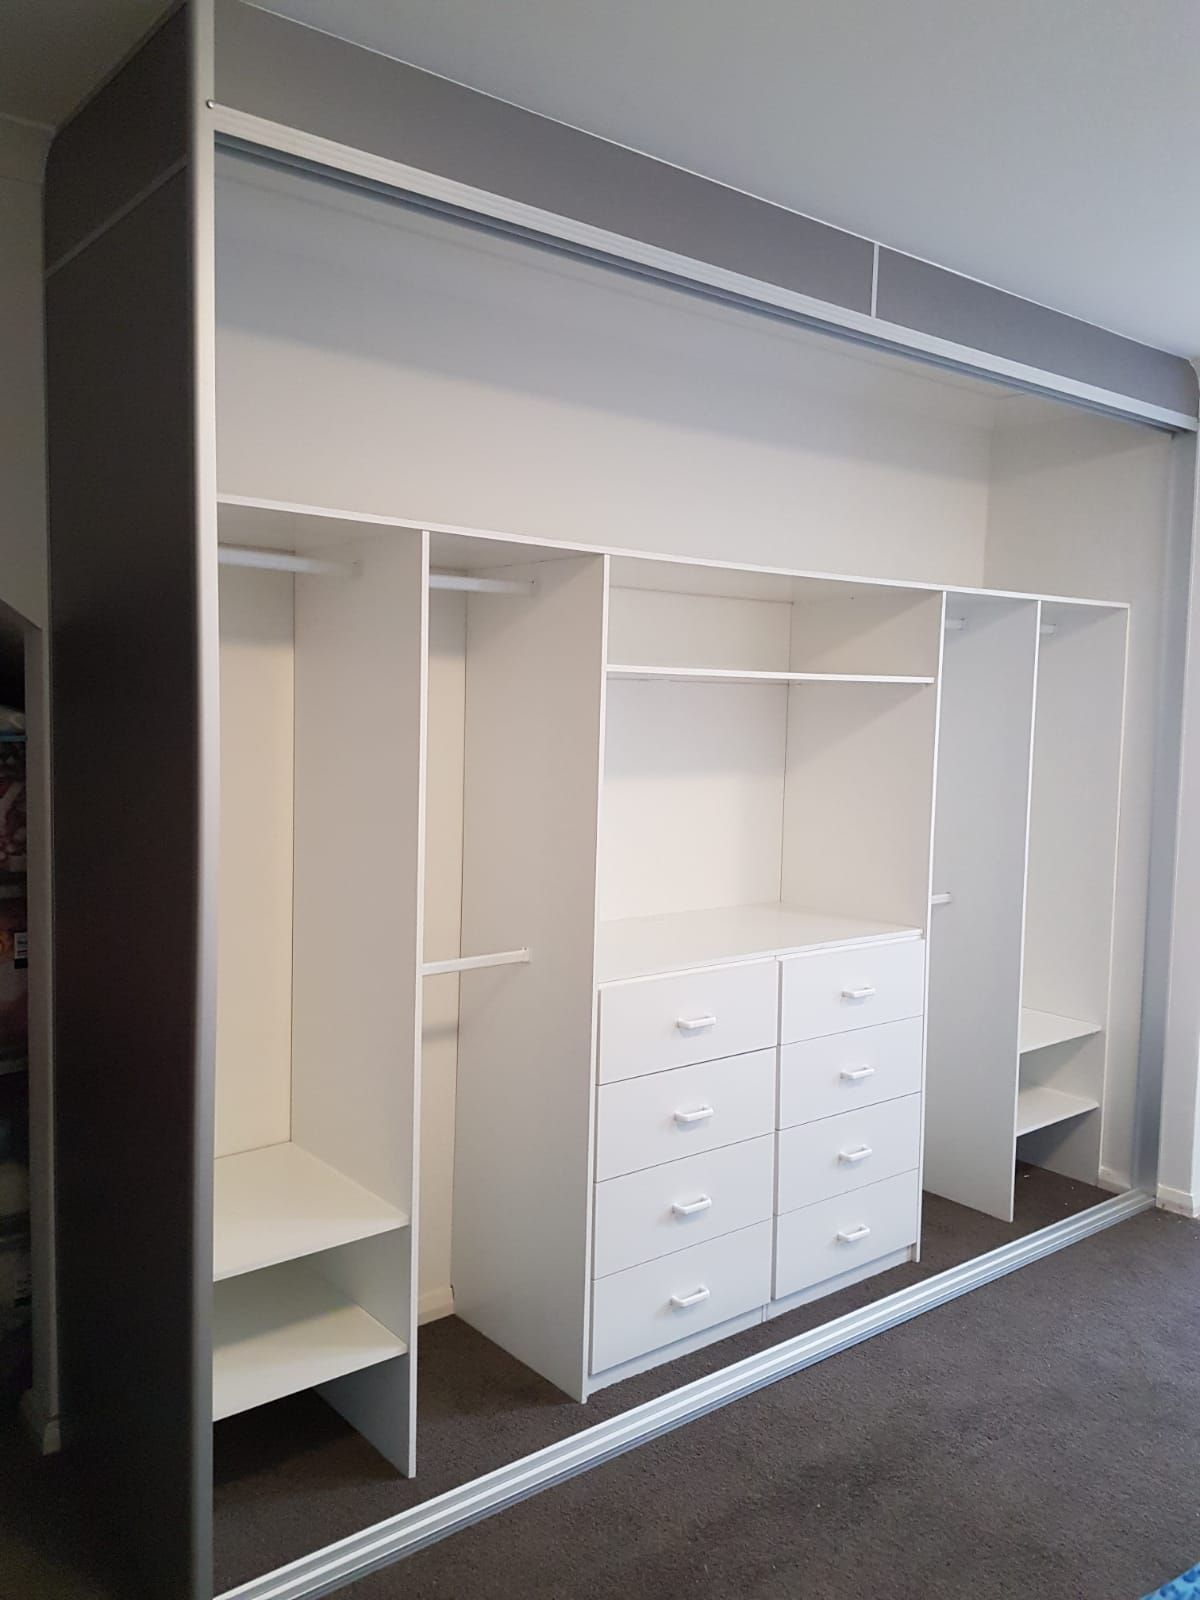 Enjoyable Storage Solutions Fantastic Built In Wardrobes Home In Home Remodeling Inspirations Basidirectenergyitoicom